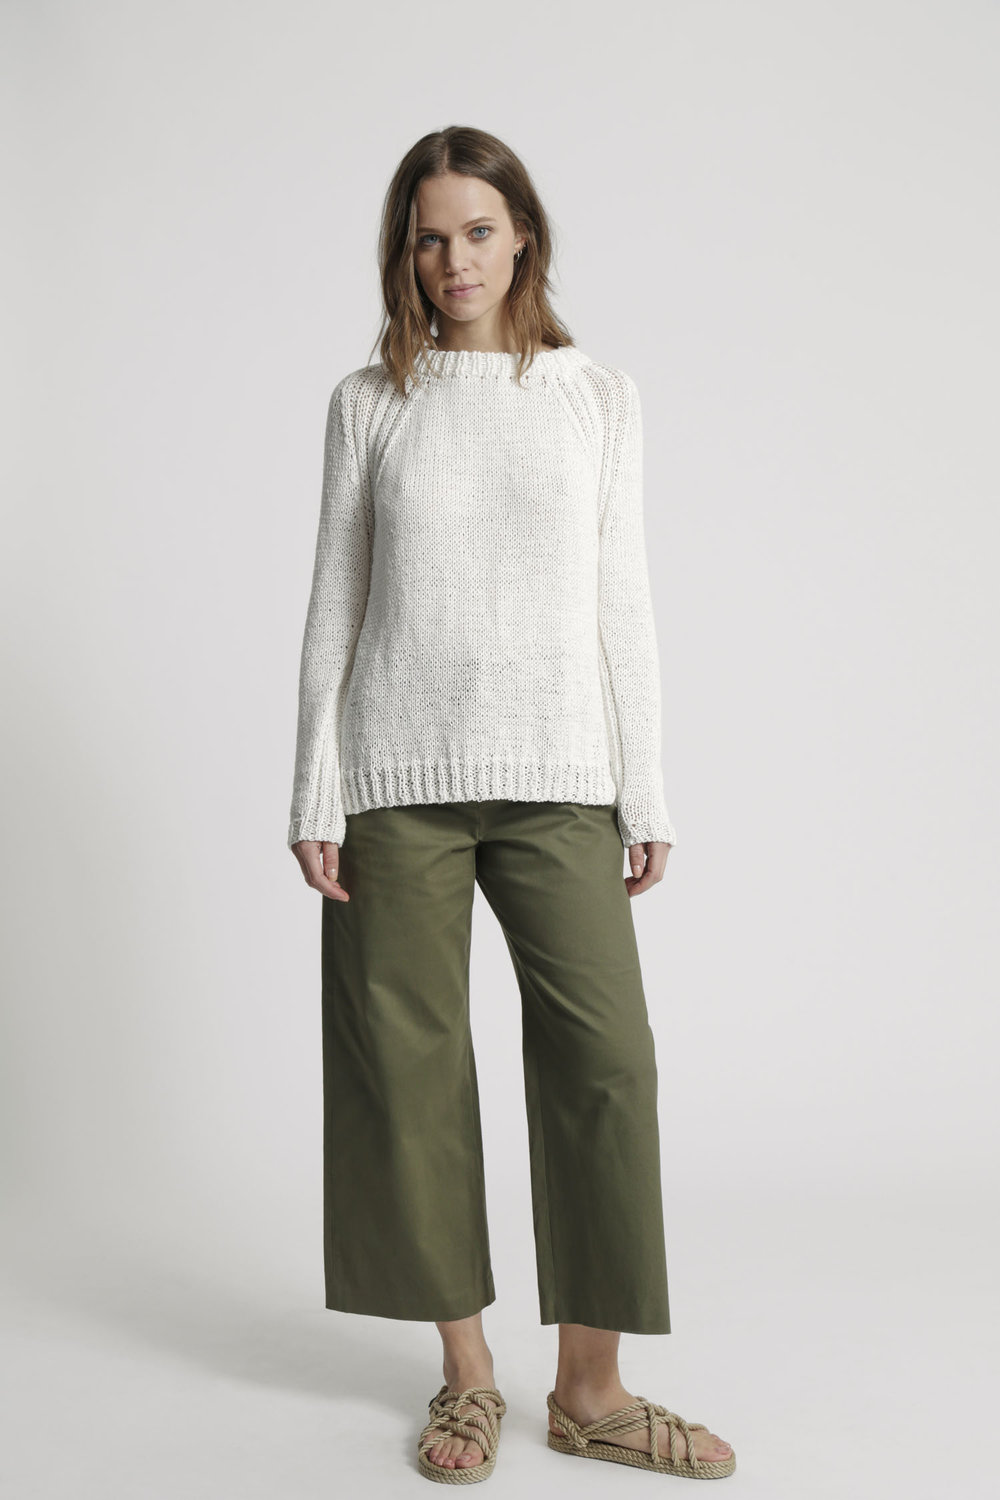 White summer sweater by Wool and the Gang | Design Hunter